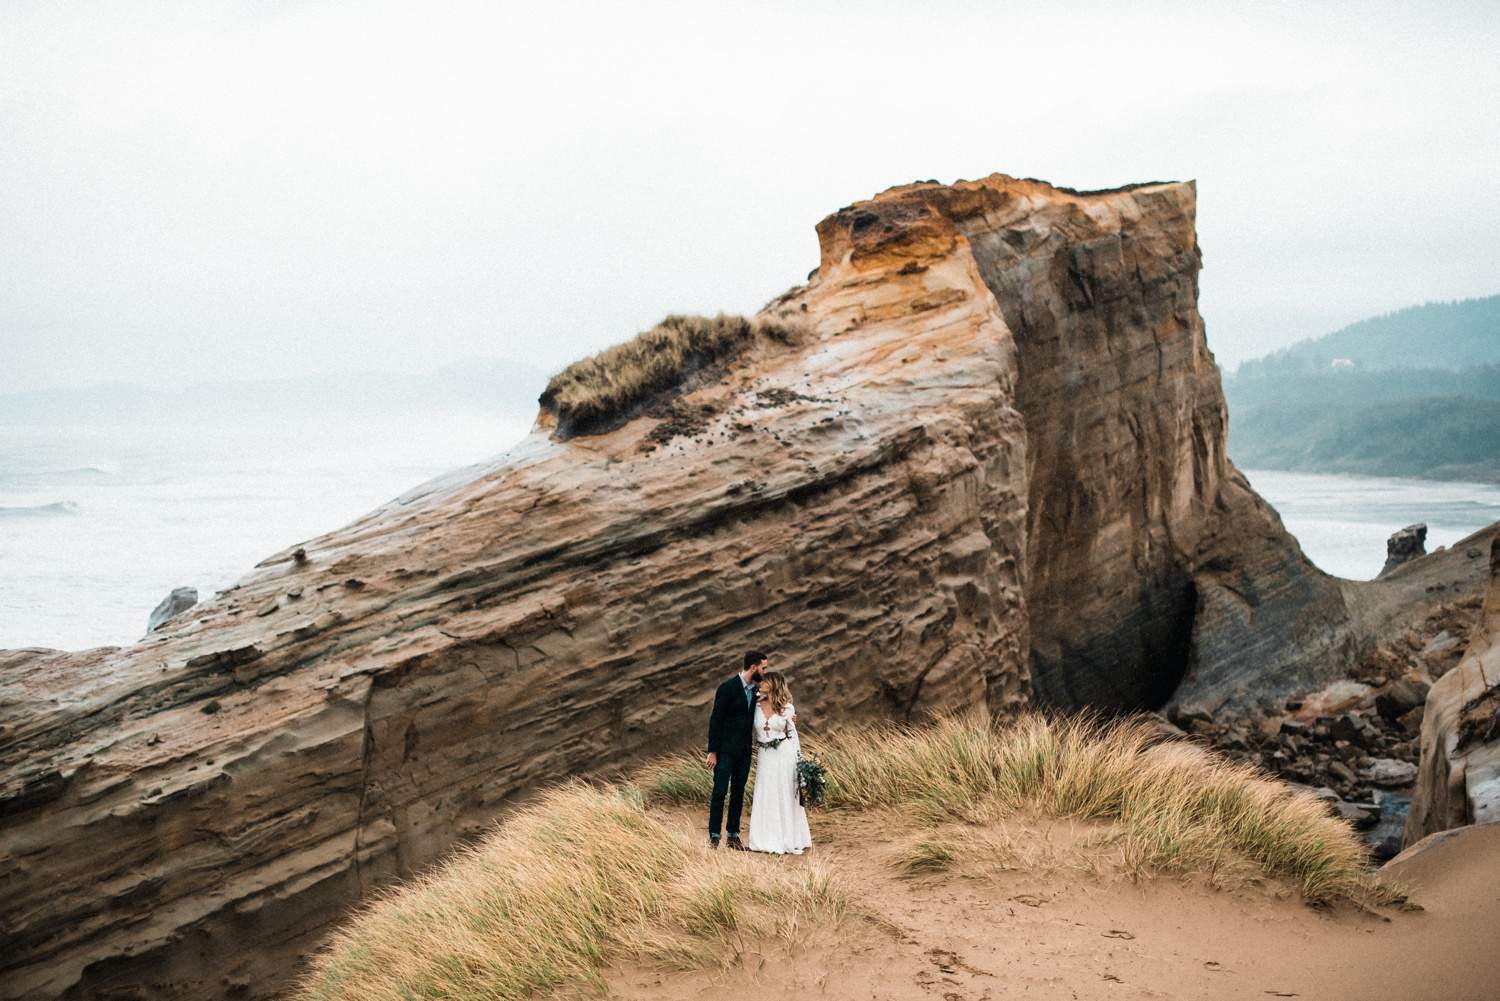 Oregon_Coast_Elopement_Wedding_The_Foxes_Photography_096.jpg